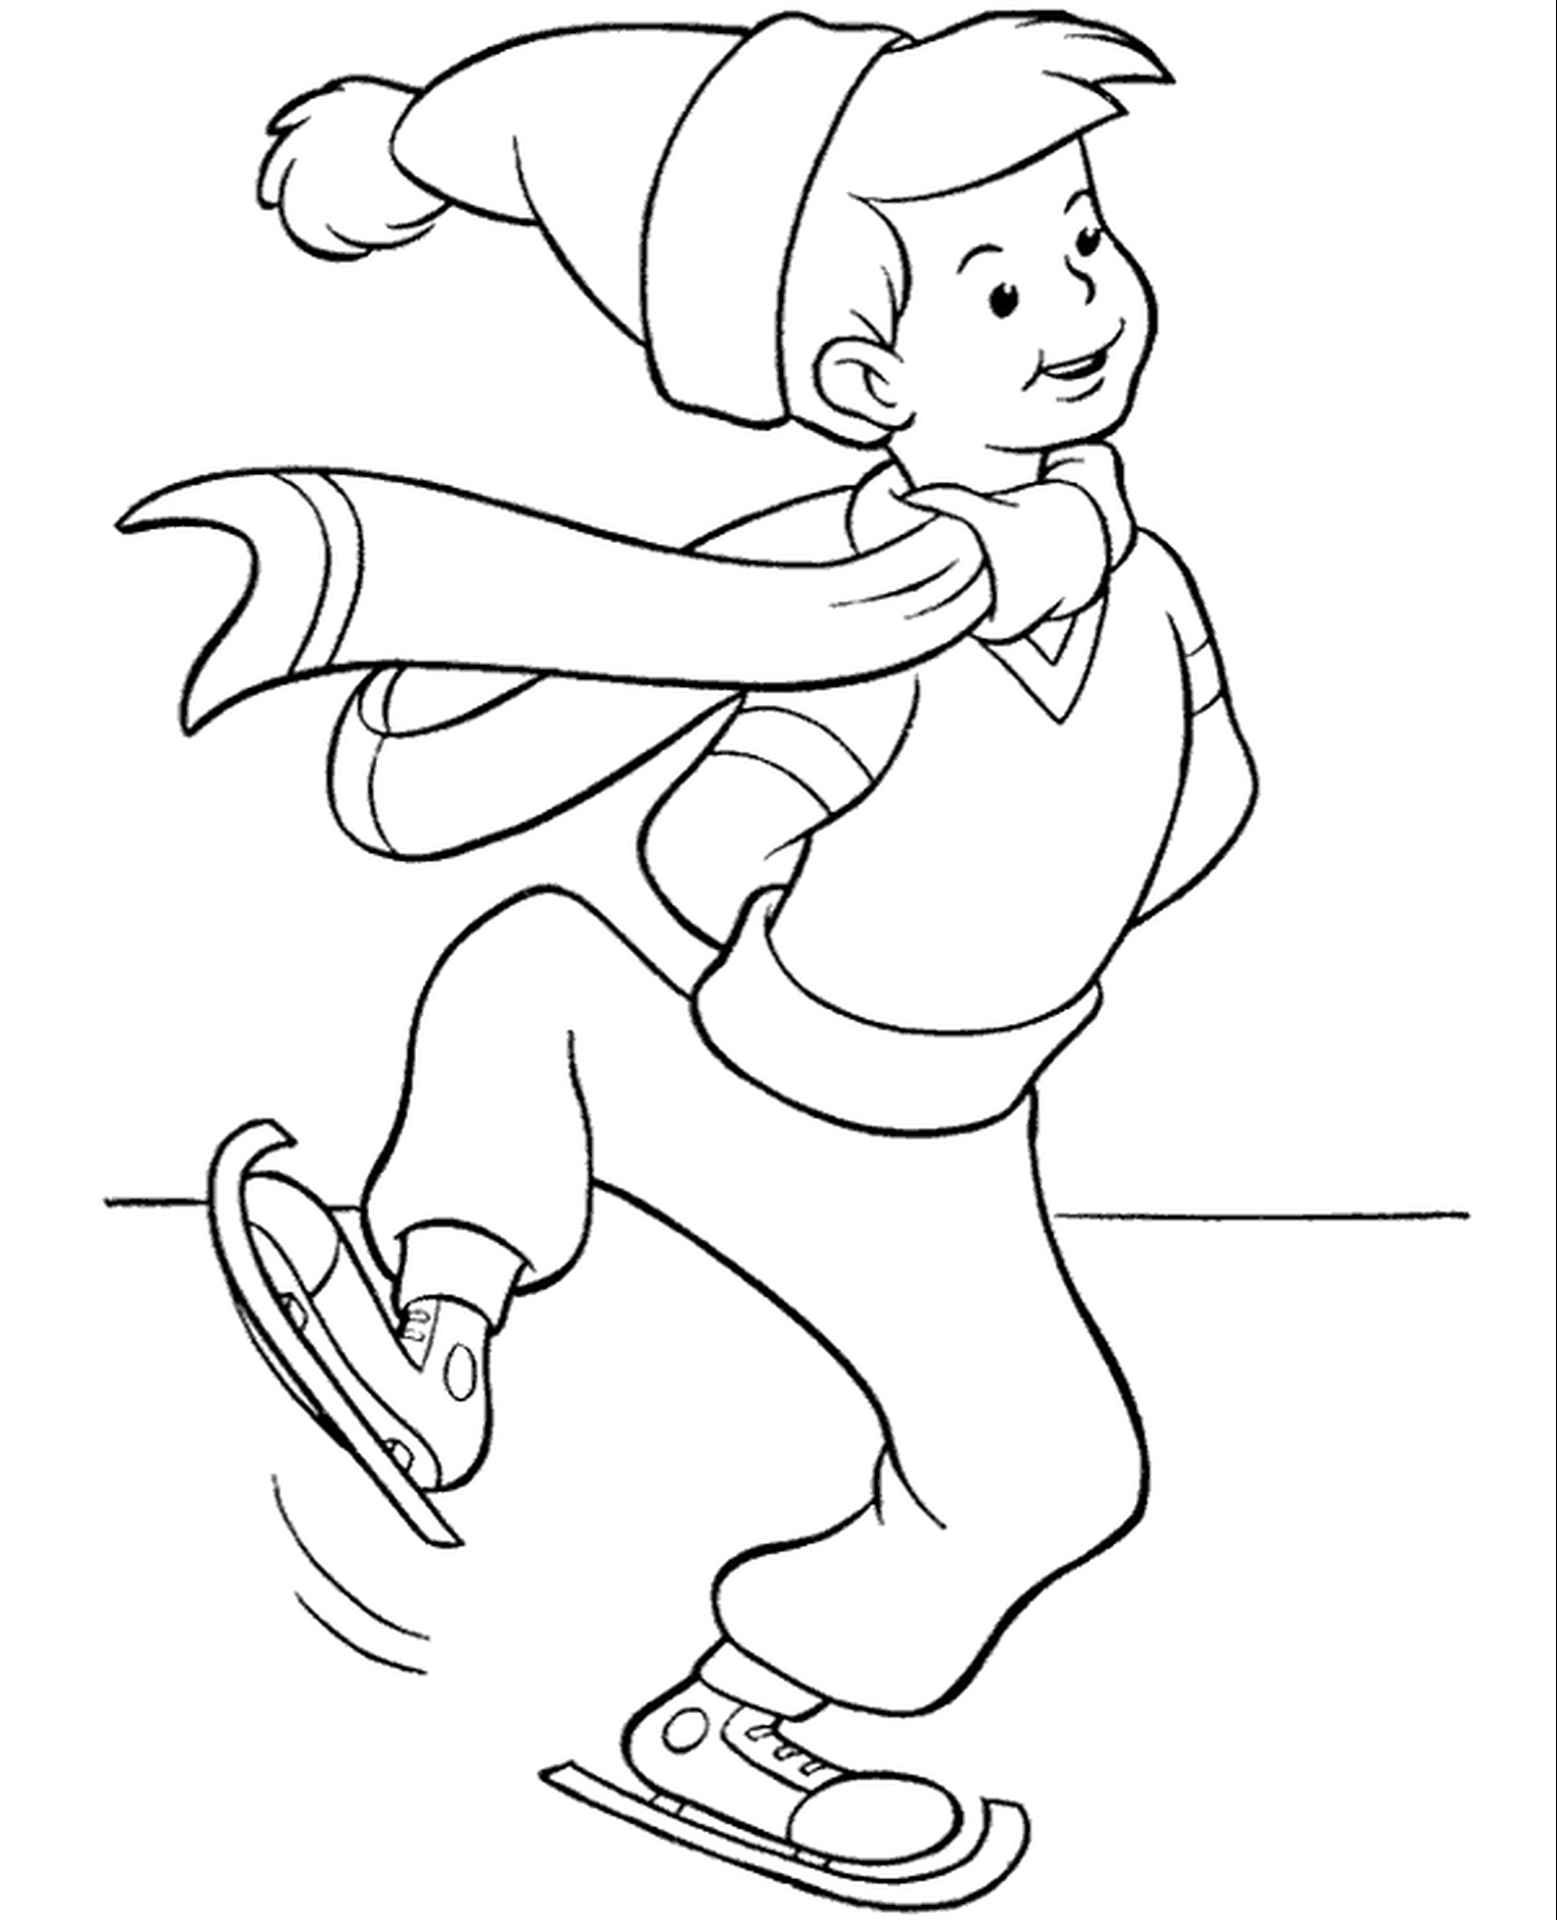 Boy Skating On Ice Coloring Page